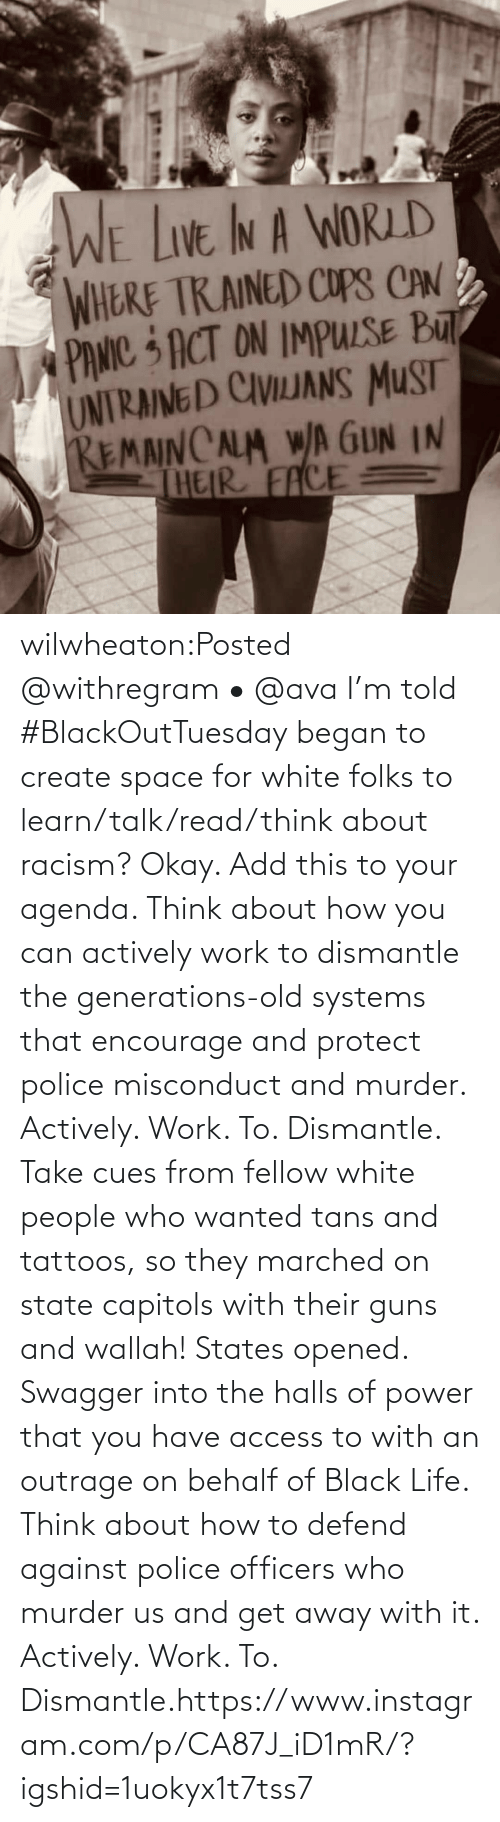 you: wilwheaton:Posted @withregram • @ava I'm told #BlackOutTuesday began to create space for white folks to learn/talk/read/think about racism? Okay. Add this to your agenda. Think about how you can actively work to dismantle the generations-old systems that encourage and protect police misconduct and murder. Actively. Work. To. Dismantle. Take cues from fellow white people who wanted tans and tattoos, so they marched on state capitols with their guns and wallah! States opened. Swagger into the halls of power that you have access to with an outrage on behalf of Black Life. Think about how to defend against police officers who murder us and get away with it. Actively. Work. To. Dismantle.https://www.instagram.com/p/CA87J_iD1mR/?igshid=1uokyx1t7tss7